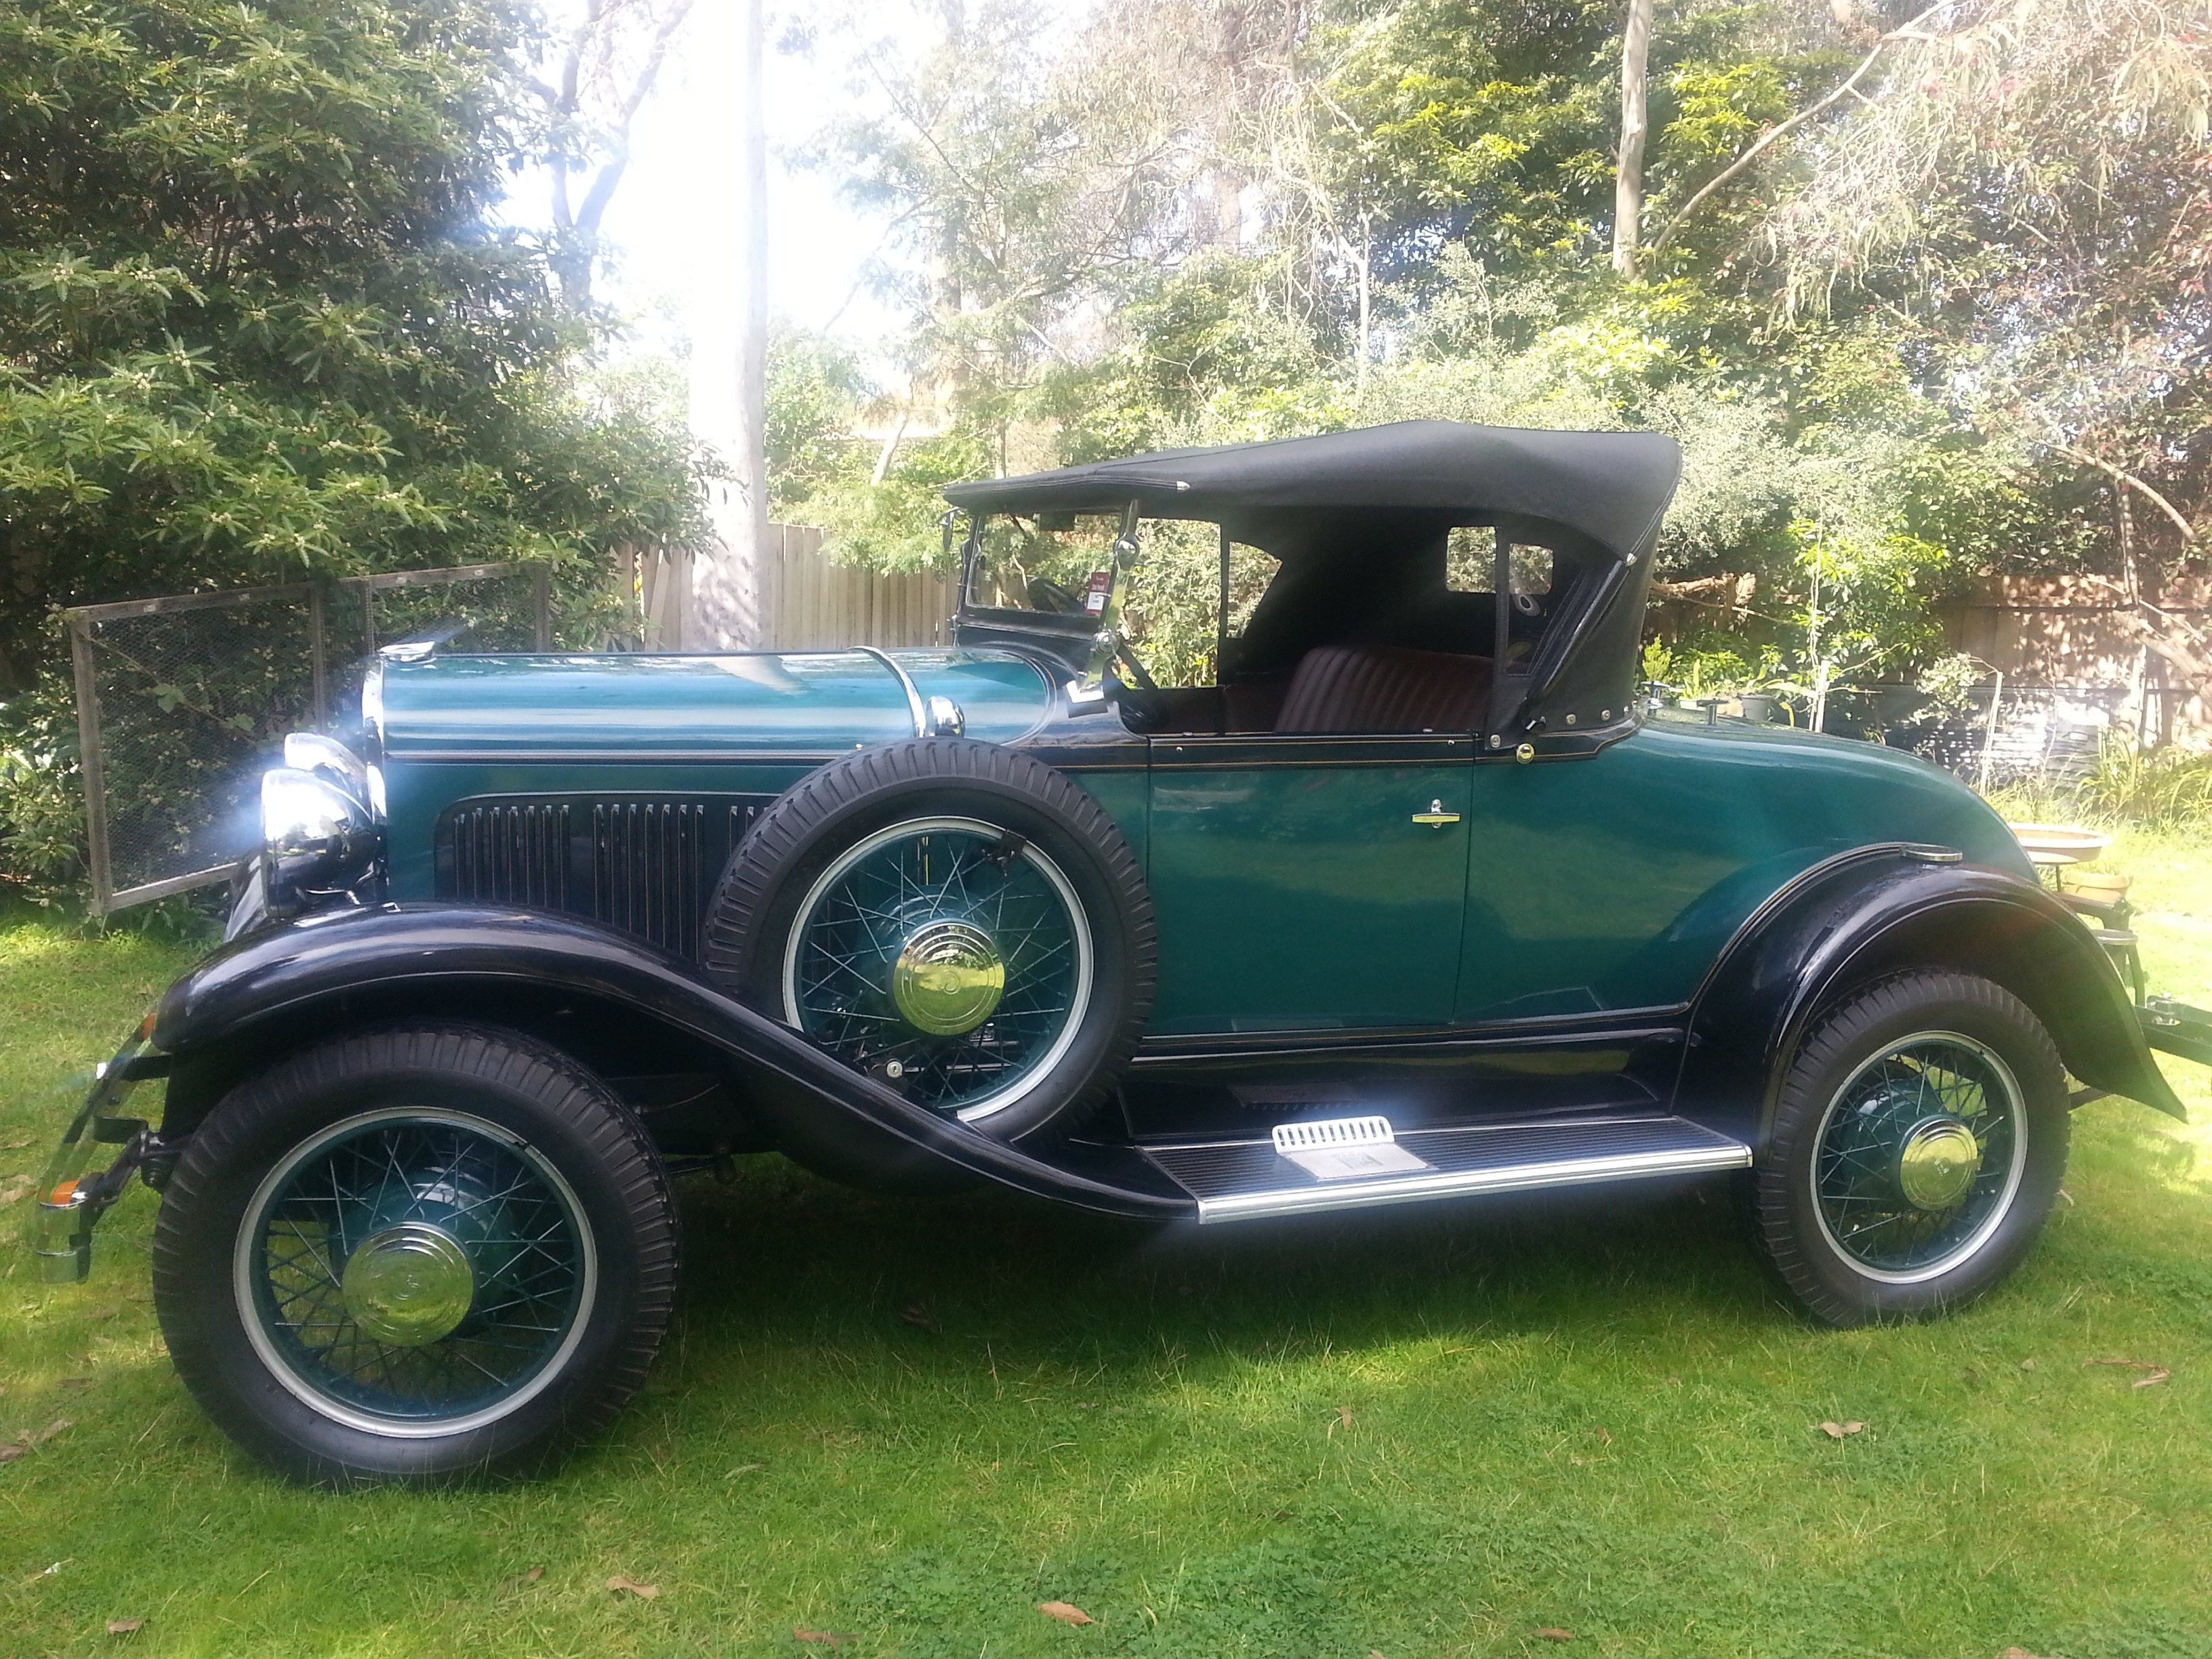 September Senior Of The Month – The 1929 Desoto!